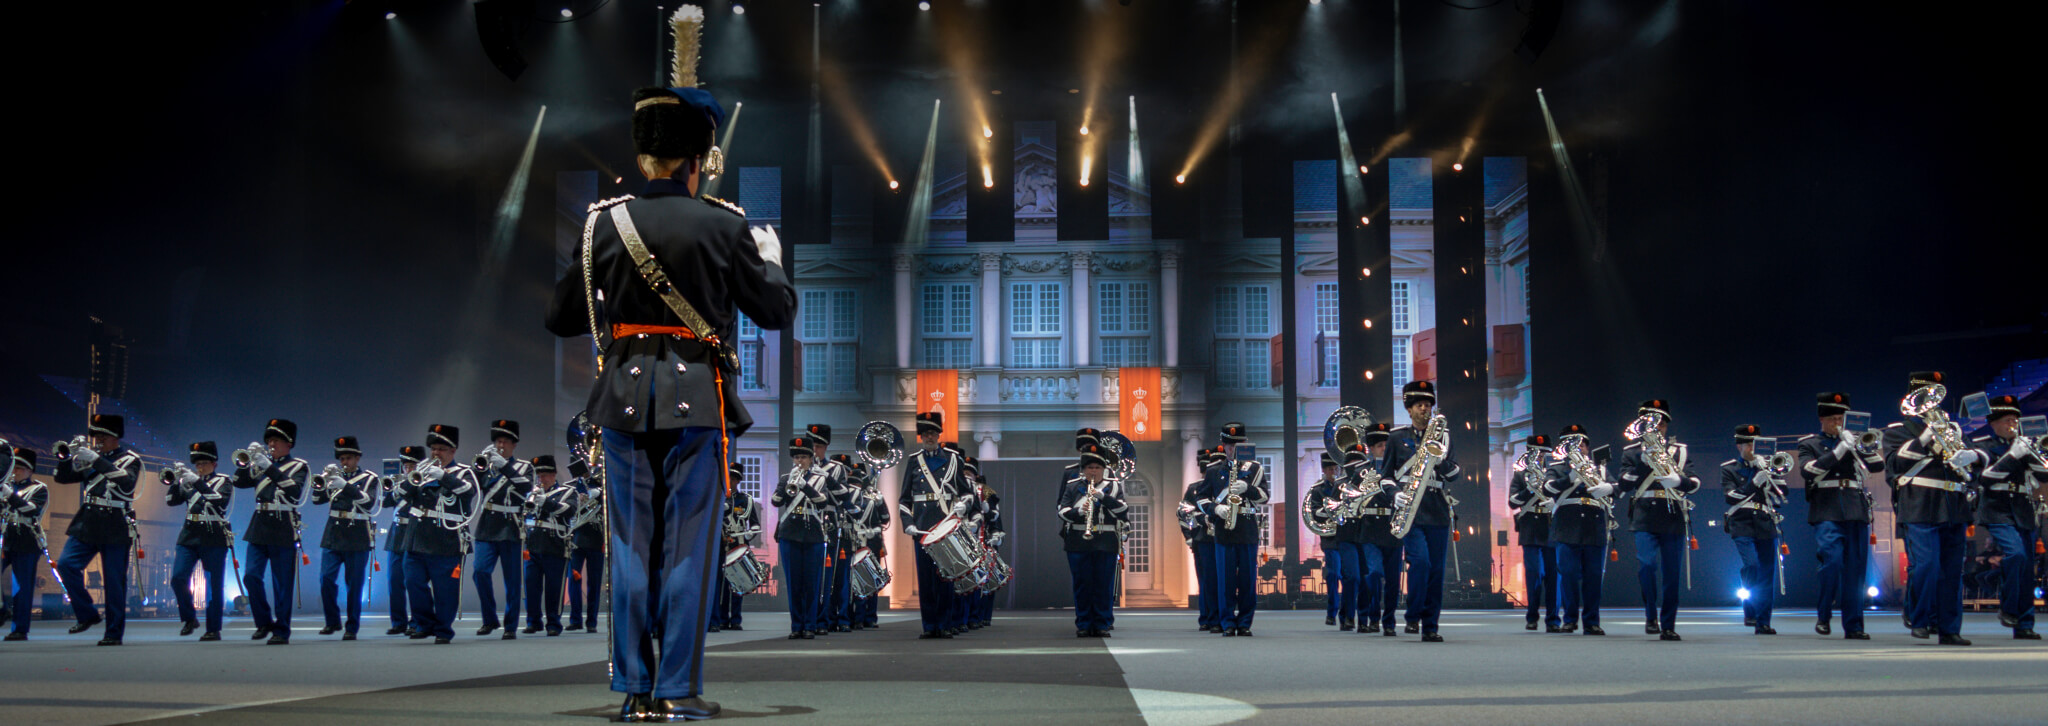 Orkest van de Koninklijke Marechaussee OKM Nationale Taptoe (The Netherlands Military Tattoo) 2018